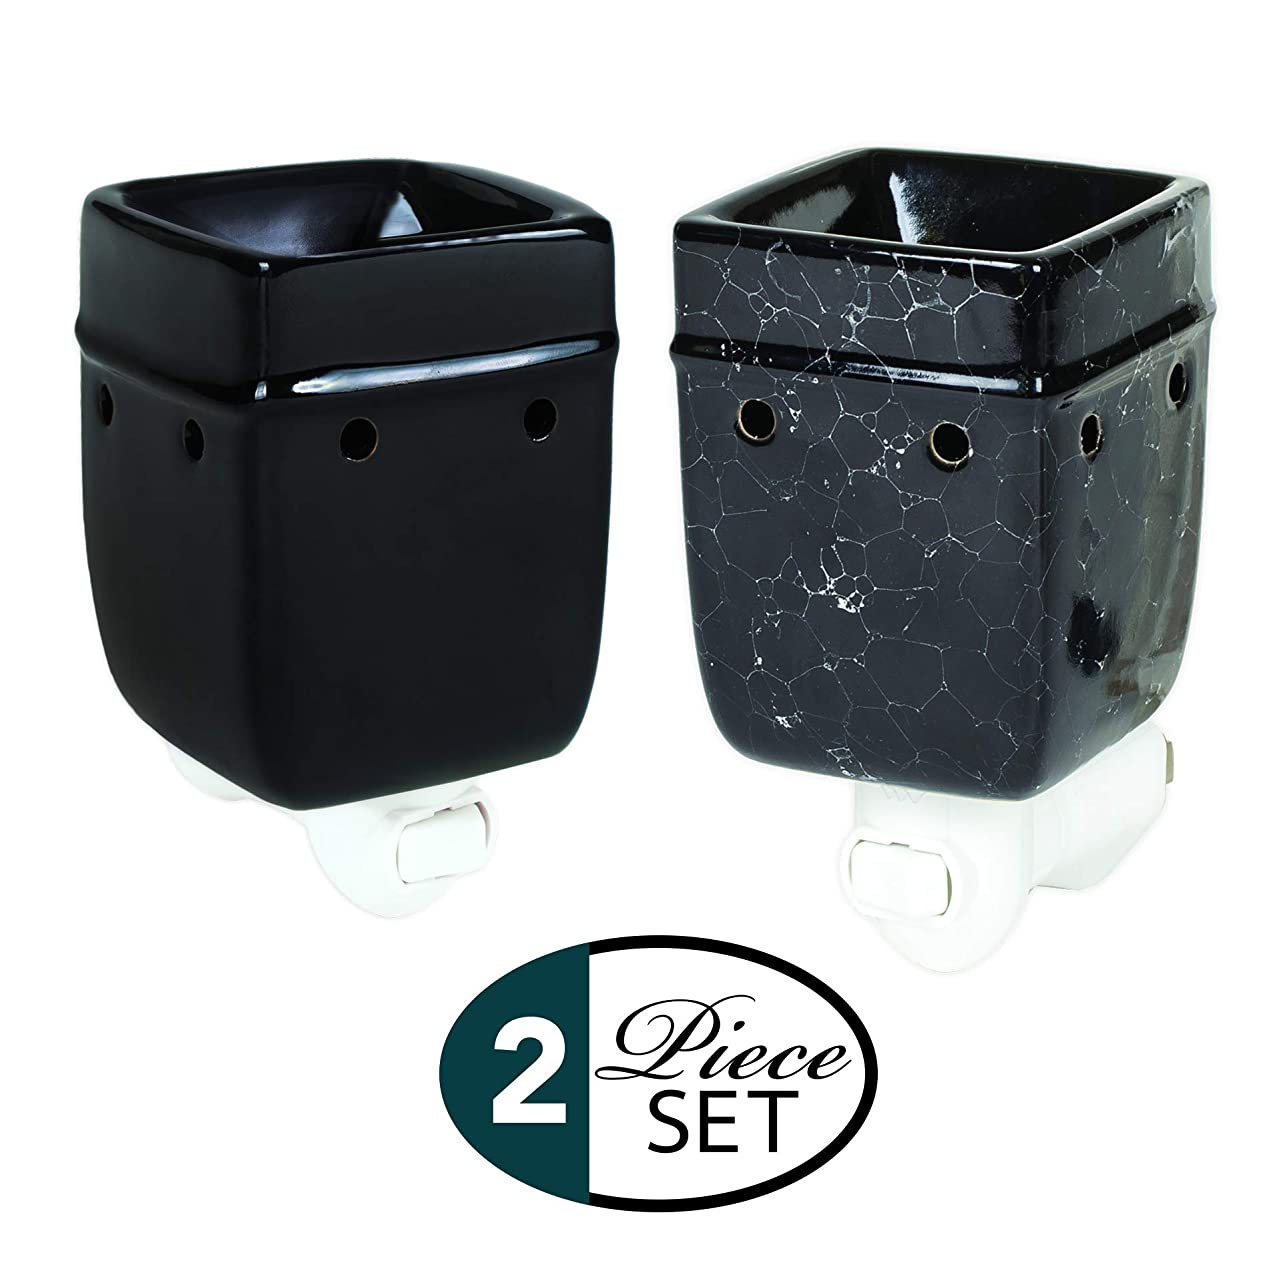 Elanze Designs Glossy Black and Marbled Ceramic Stoneware Electric Plug-in Outlet Wax Oil Warmer Set of 2